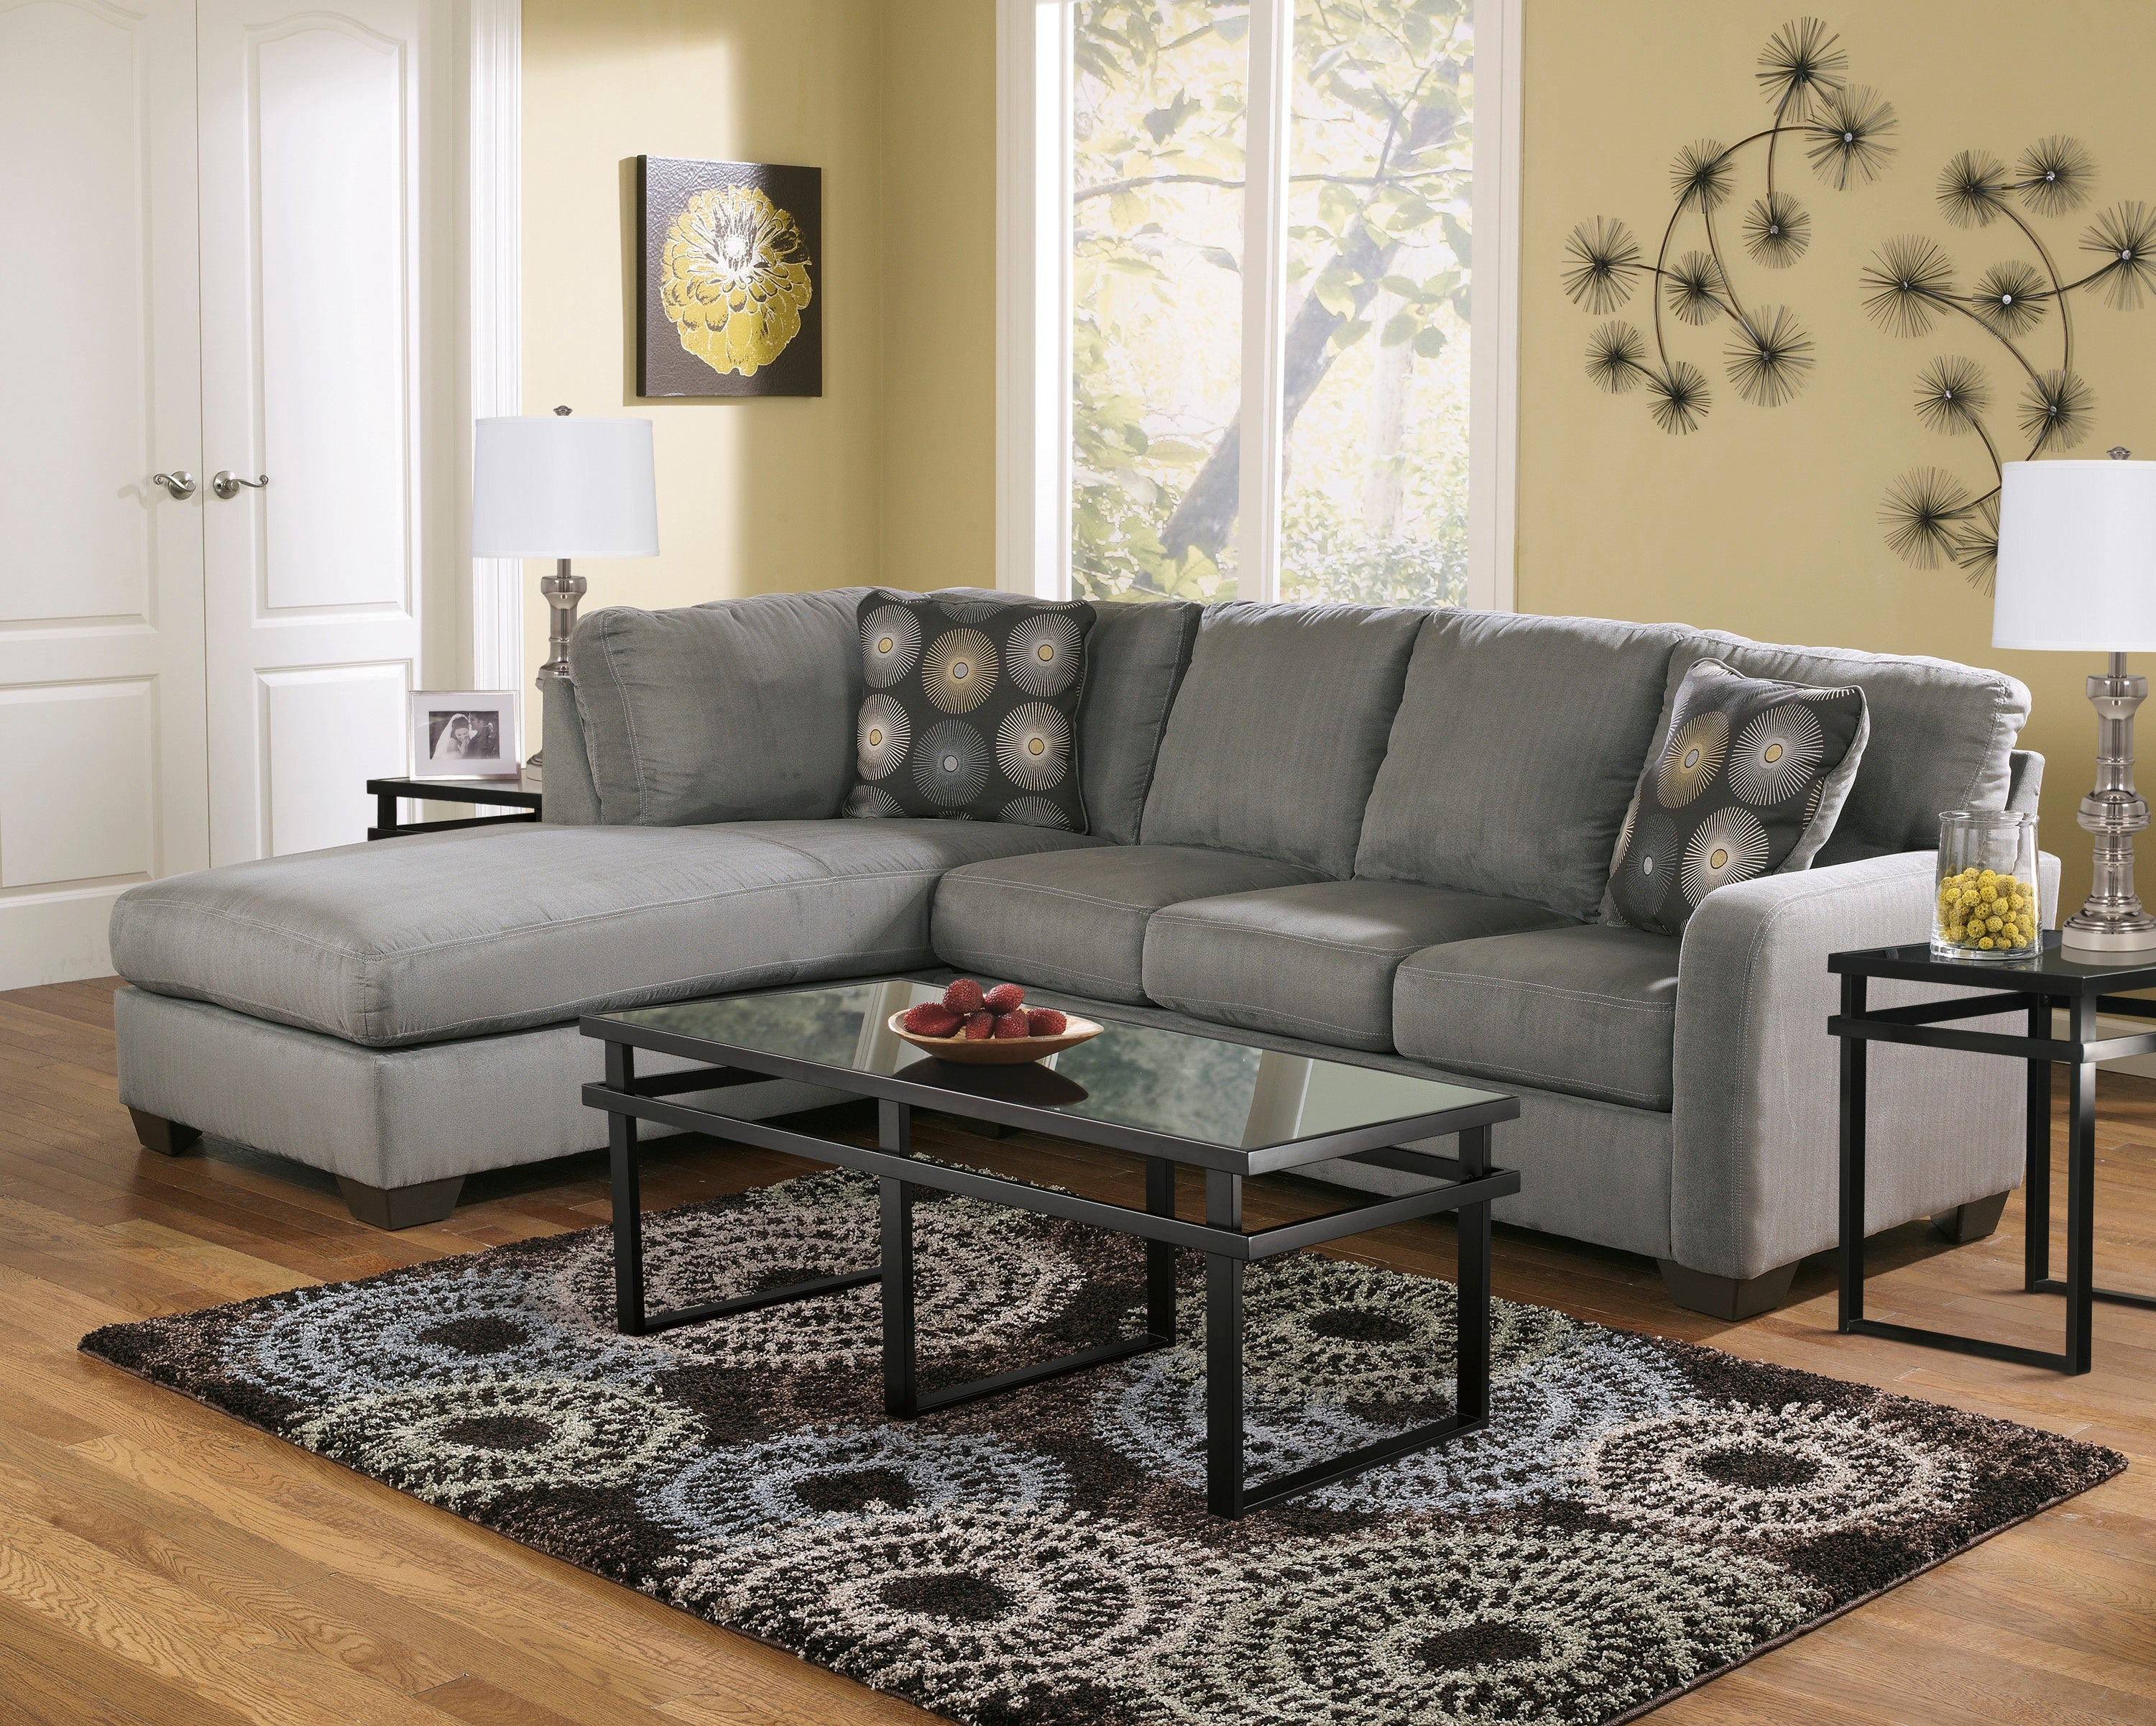 Stella Chaise Lounge Suite : chaise lounge suite - Sectionals, Sofas & Couches